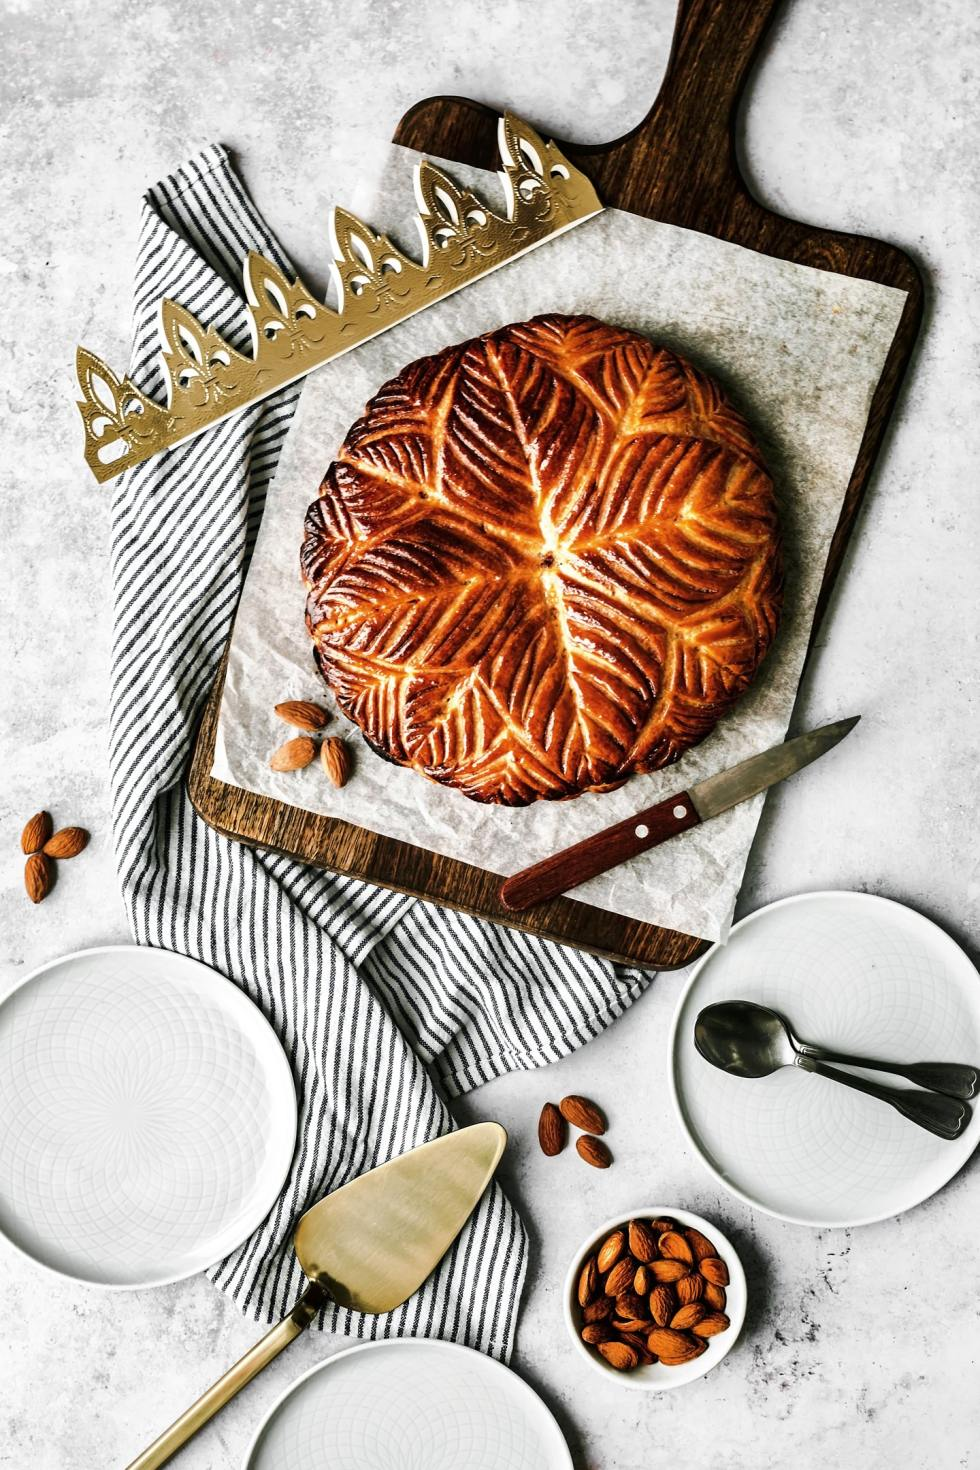 Galette des rois French king cake